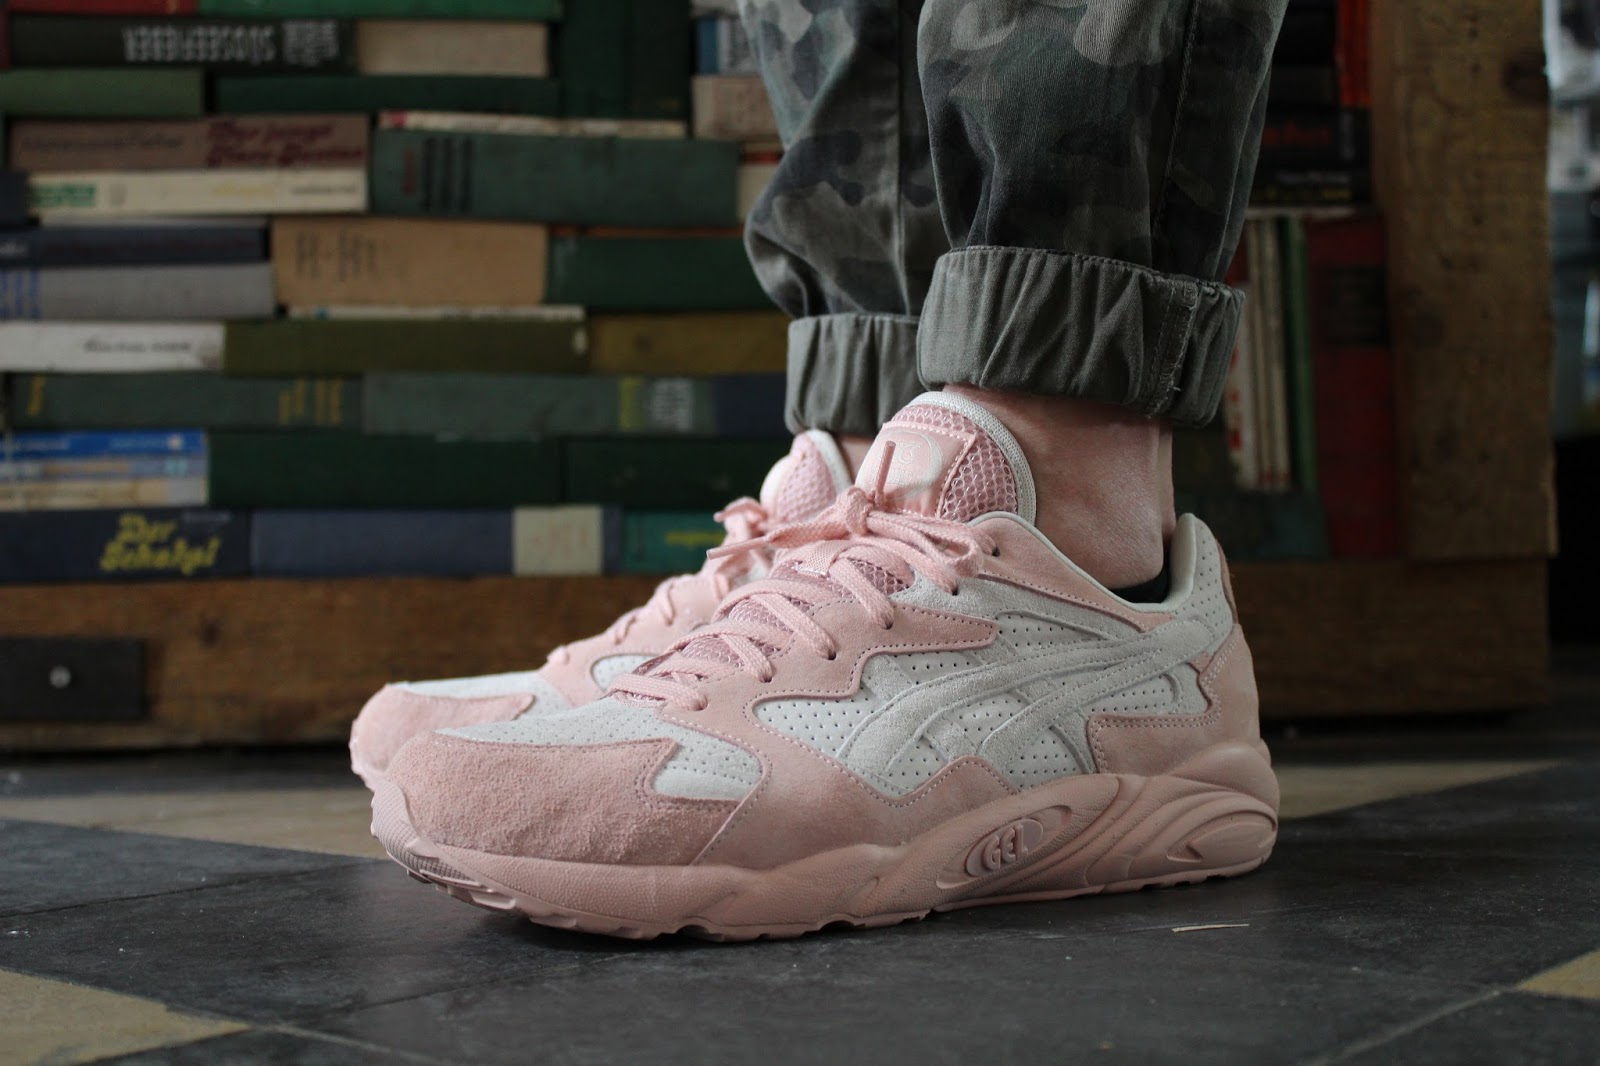 Atomlabor Blog ASICS TIGER GEL MAI & GEL-DIABLO IM CLOSER LOOK